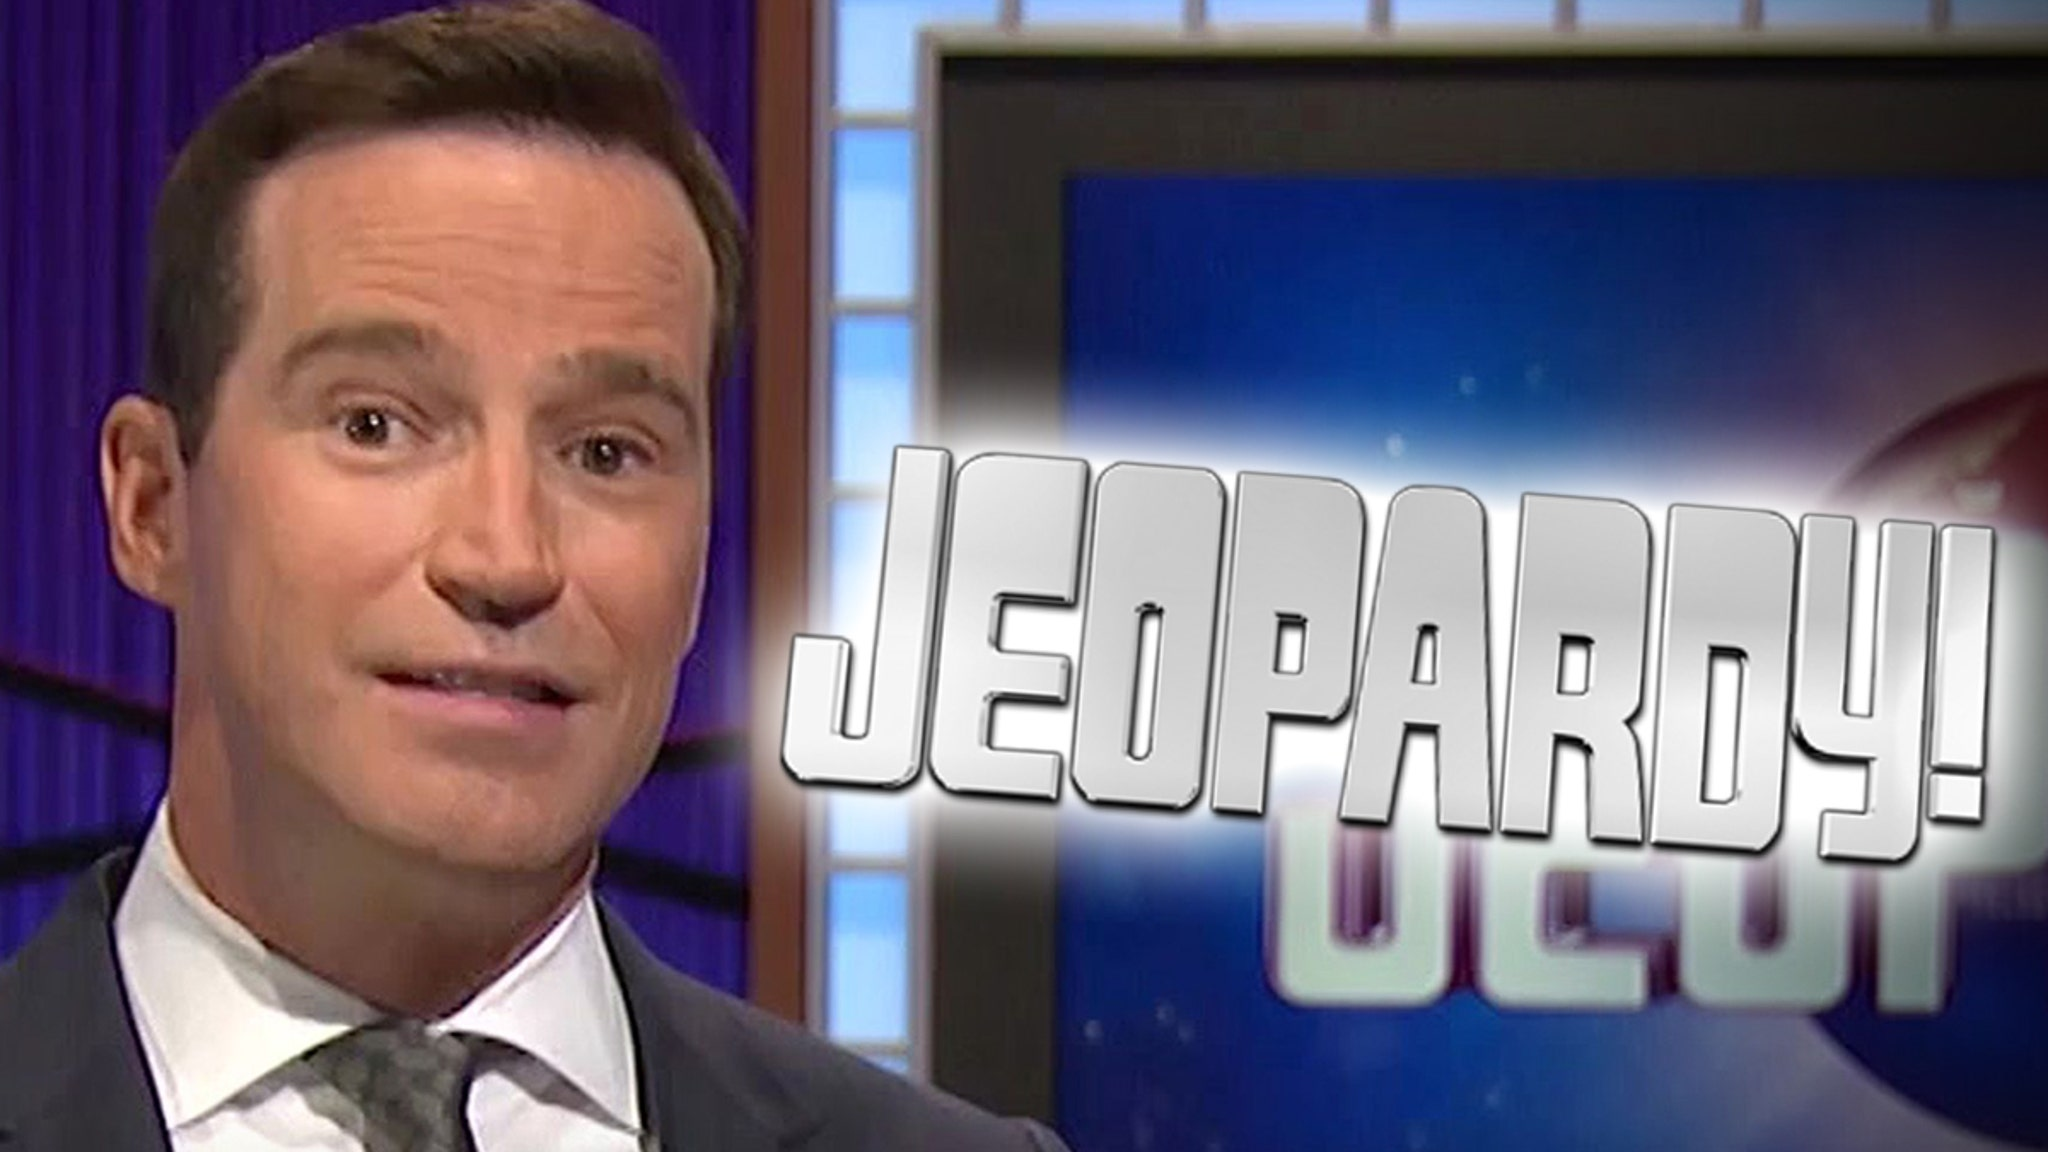 Mike Richards Steps Down as 'Jeopardy!' Host, Aaron Rodgers Still Interested thumbnail